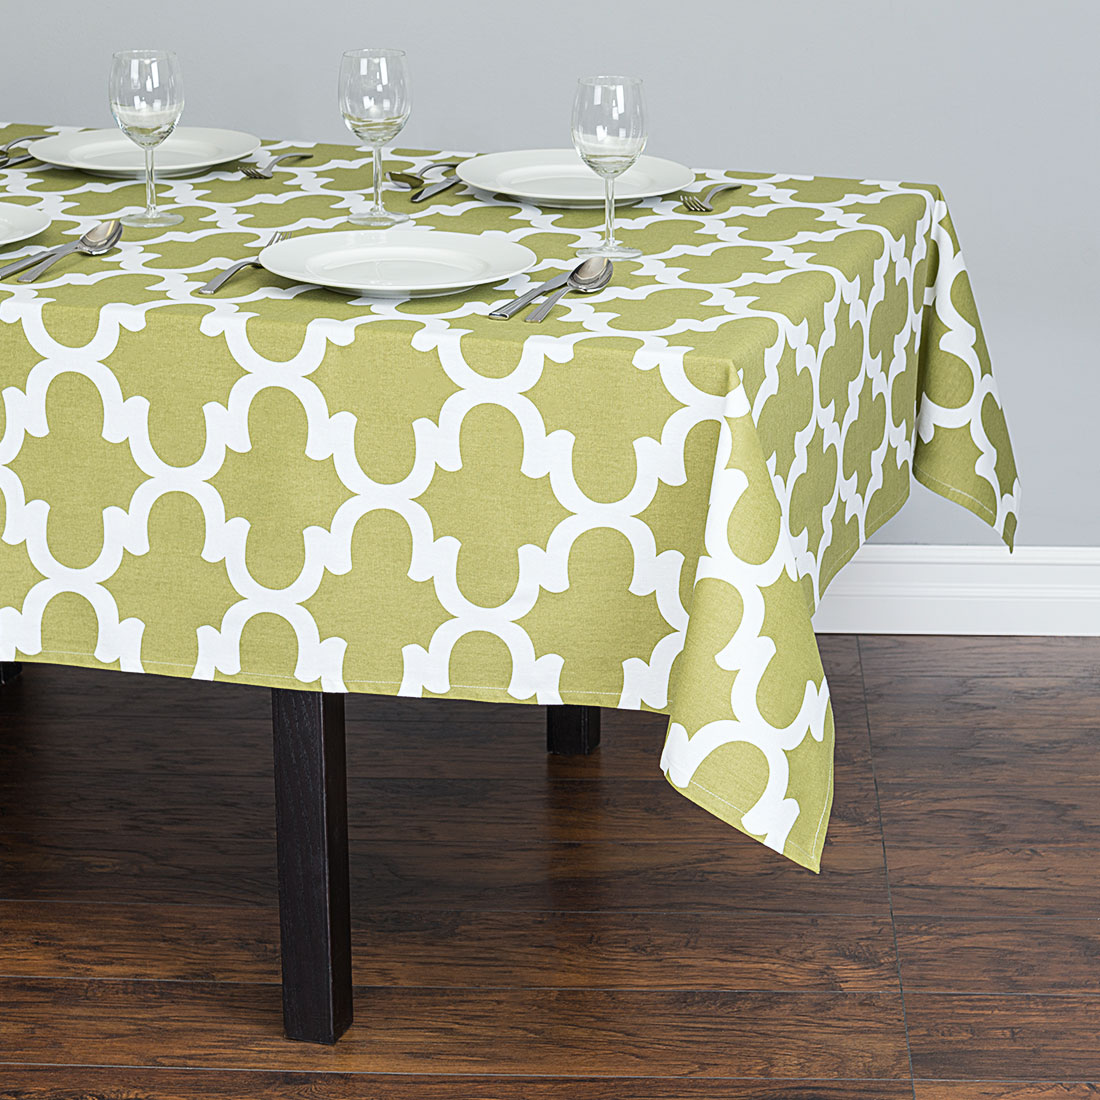 60 in. Trellis Square Cotton Tablecloth Olive Green & White by